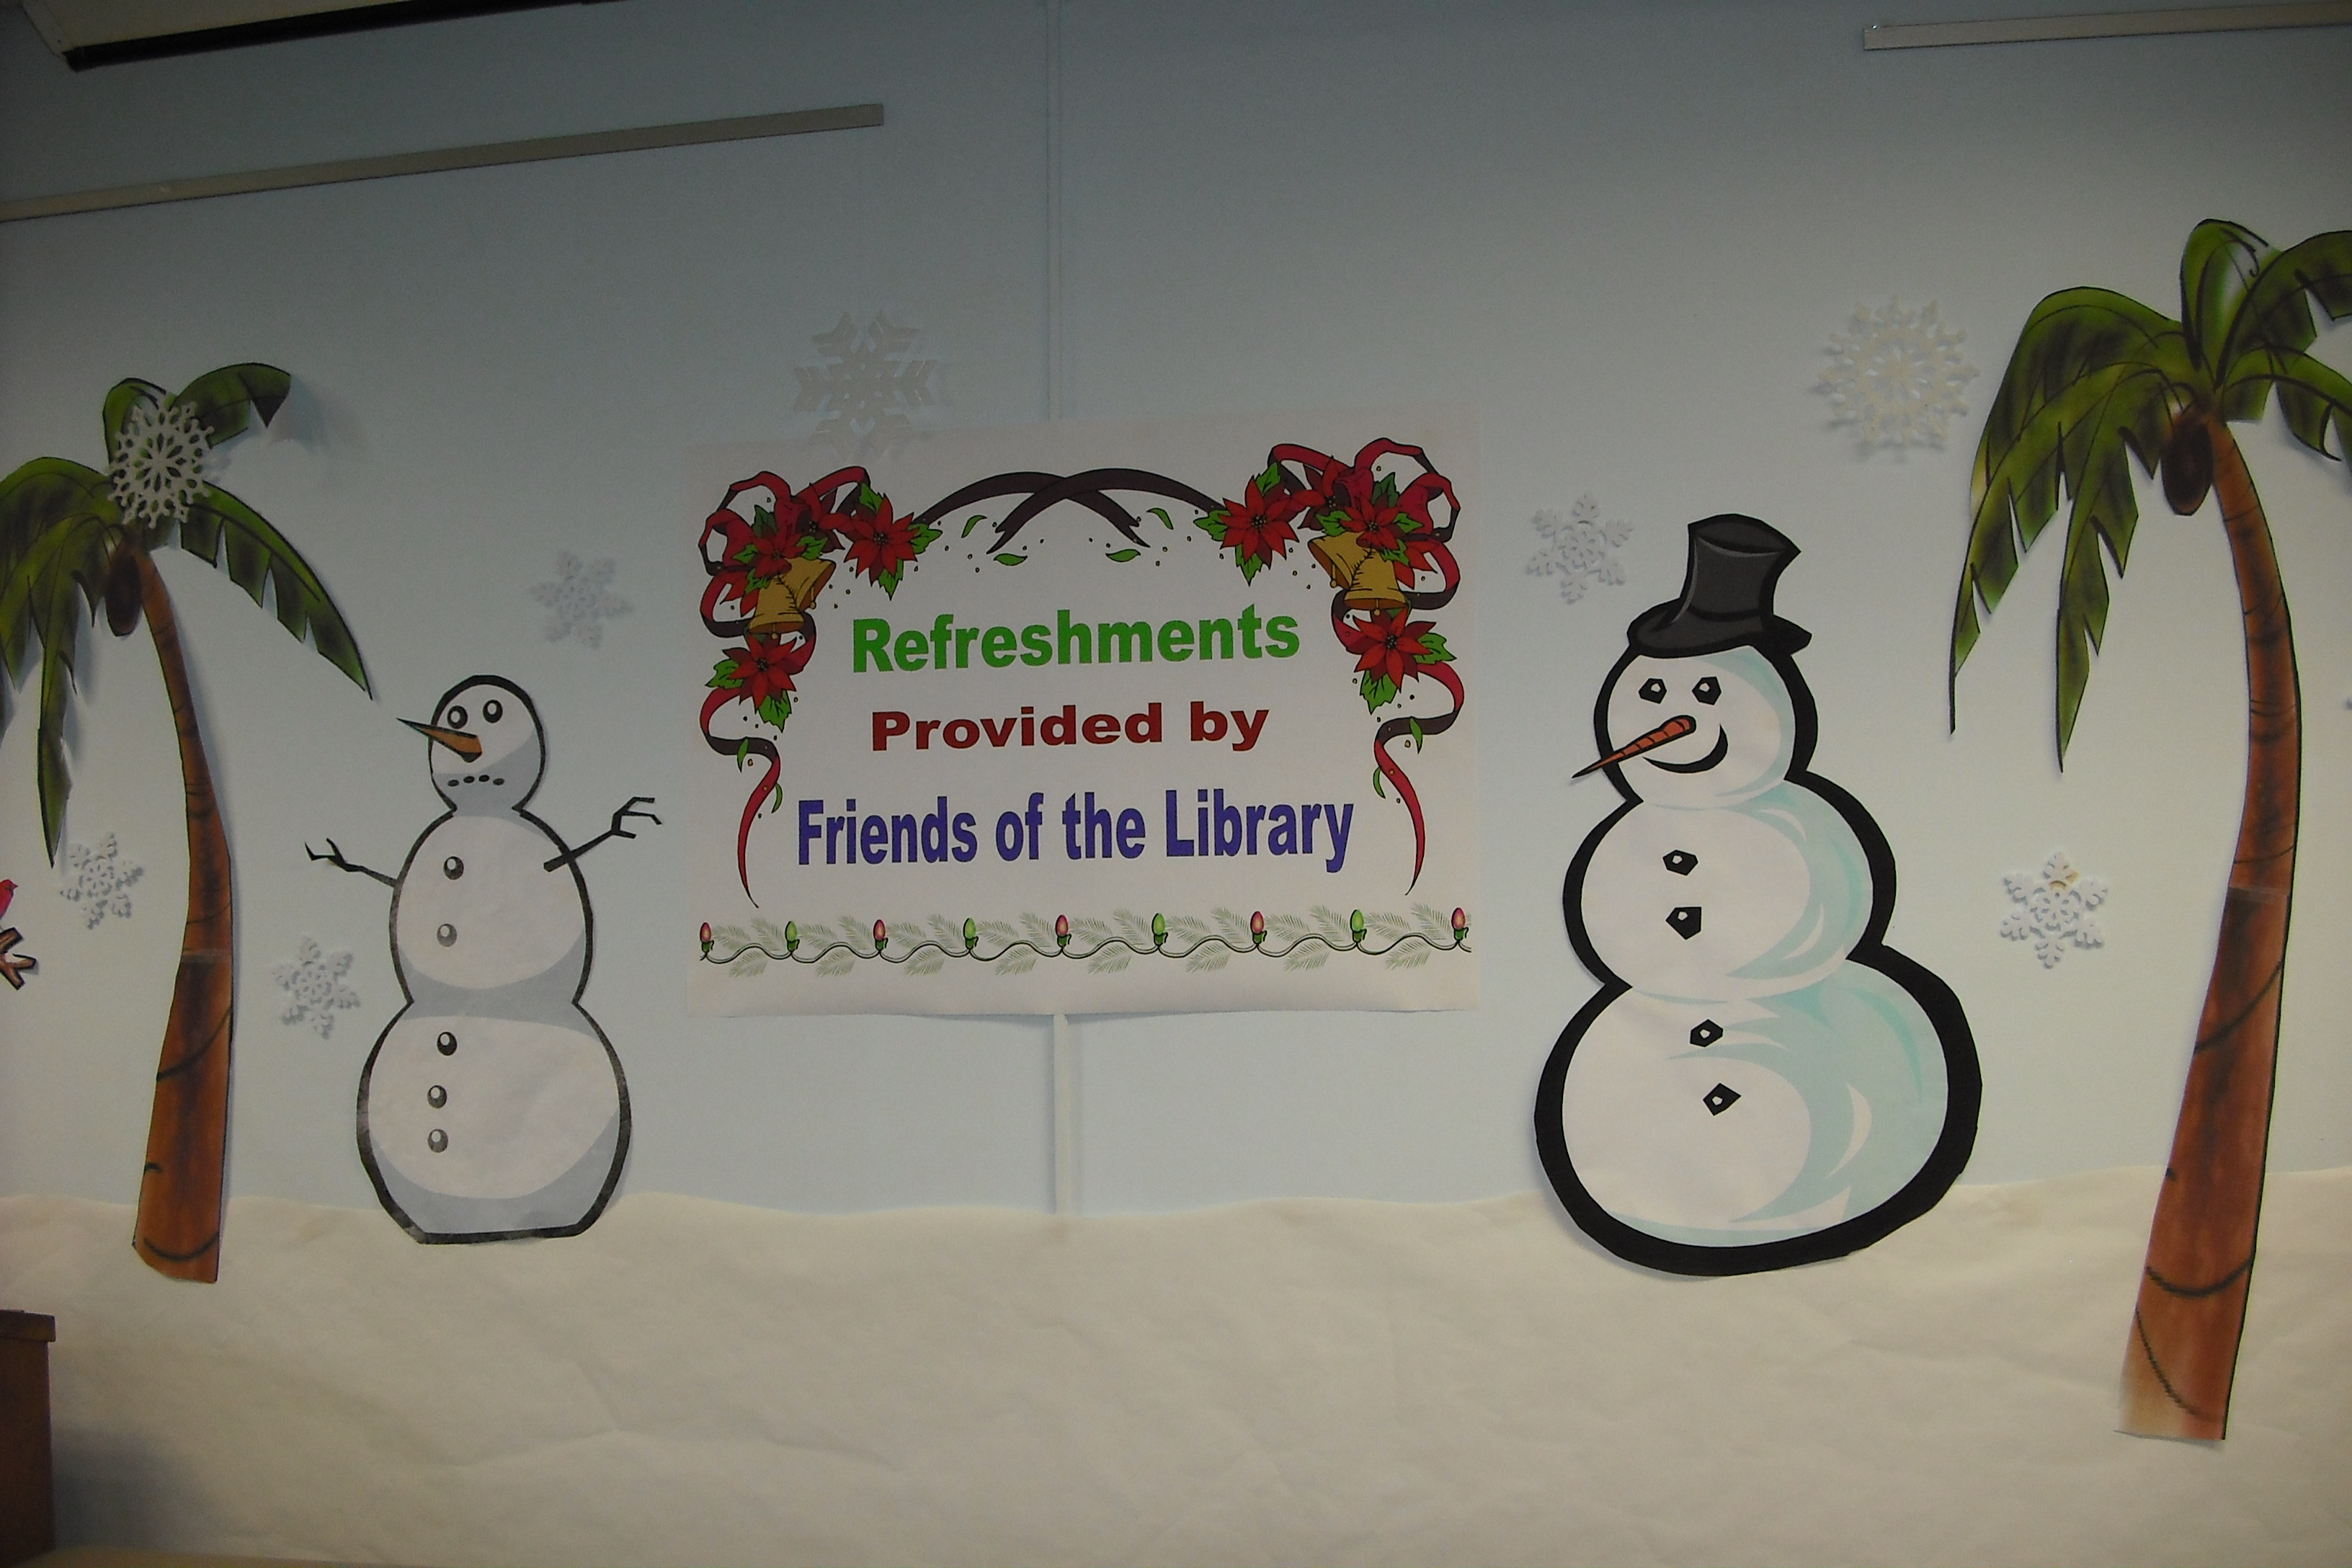 Refreshments were provided by the Friends of the Library